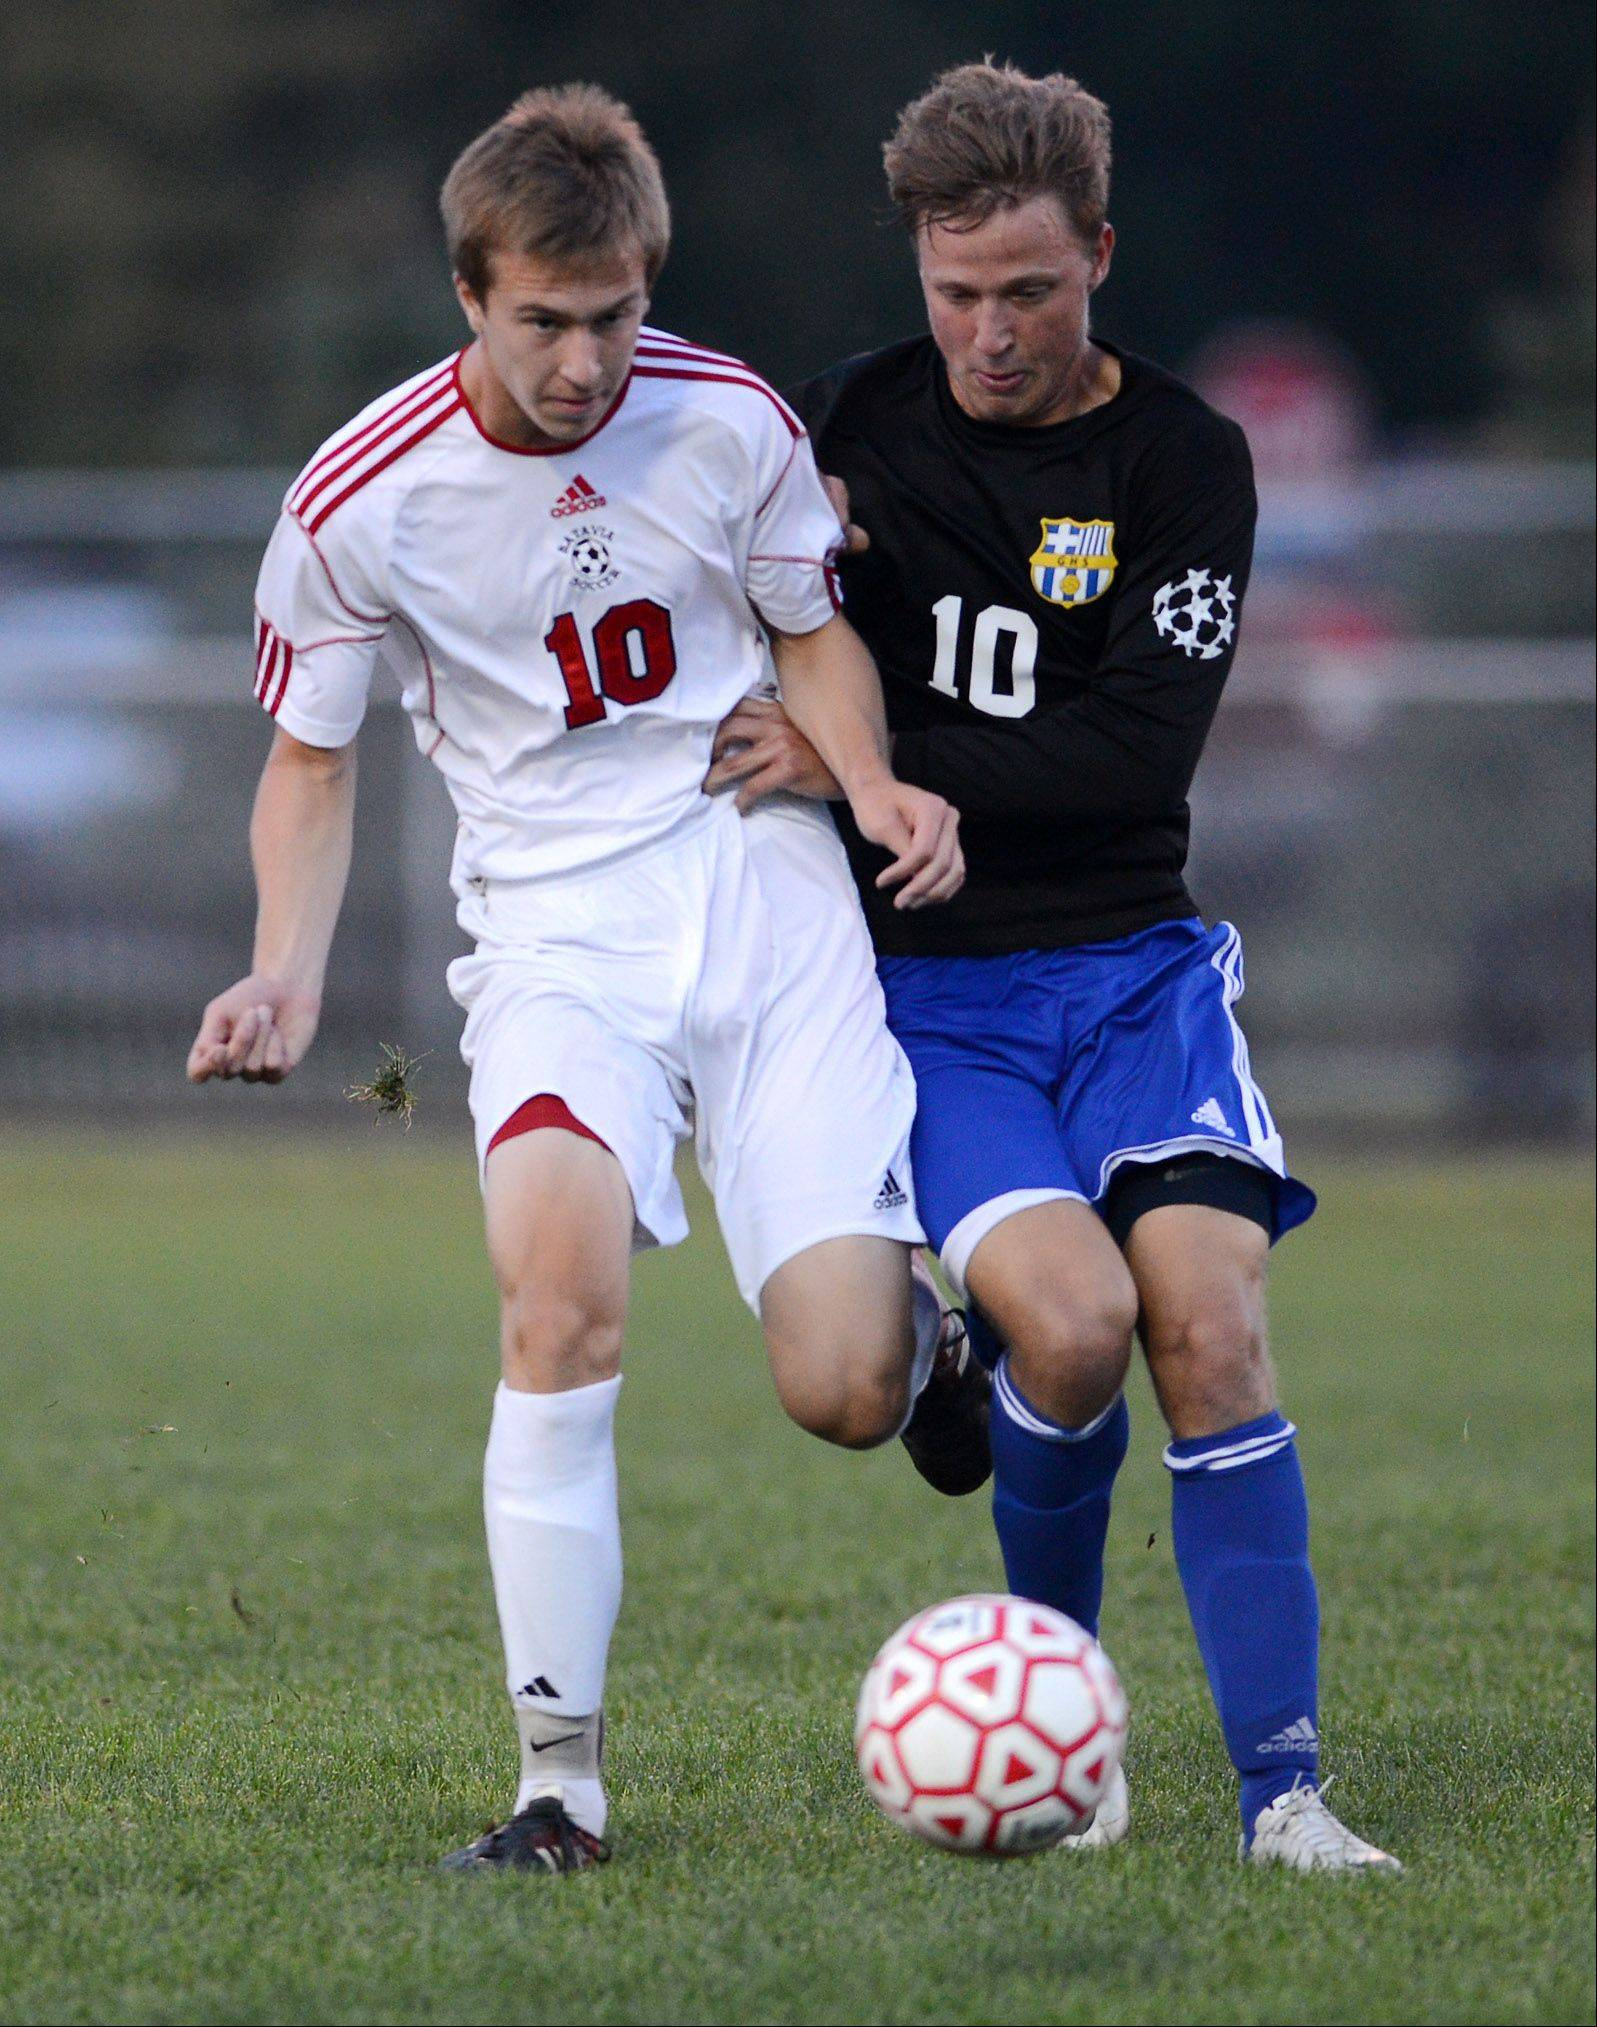 Batavia's Adam Heinz (10) battles Geneva's Beck Nebergall (10) for the ball.